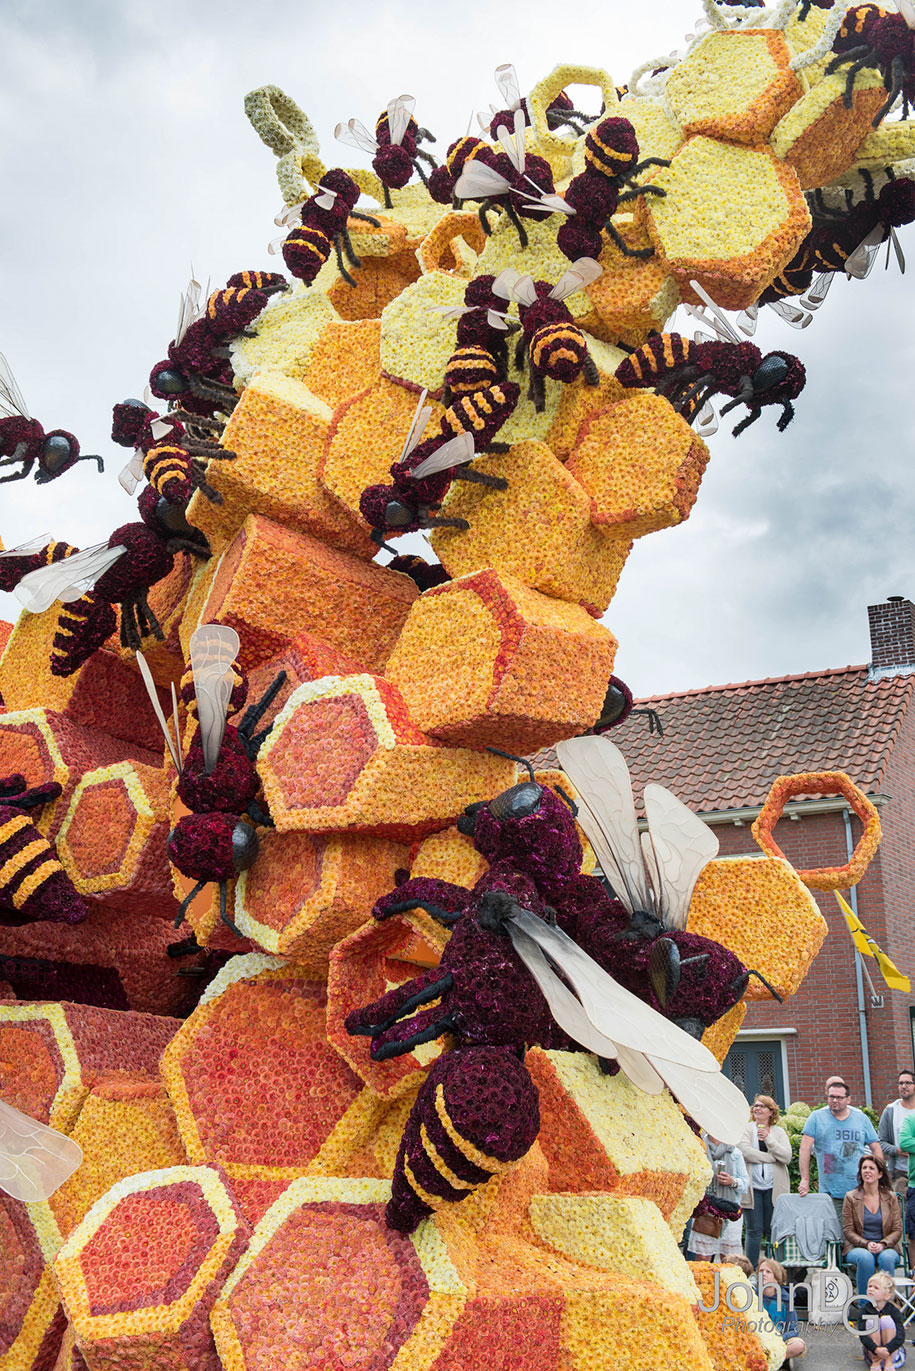 giant-flower-sculpture-parade-corso-zundert-2016-netherlands-32